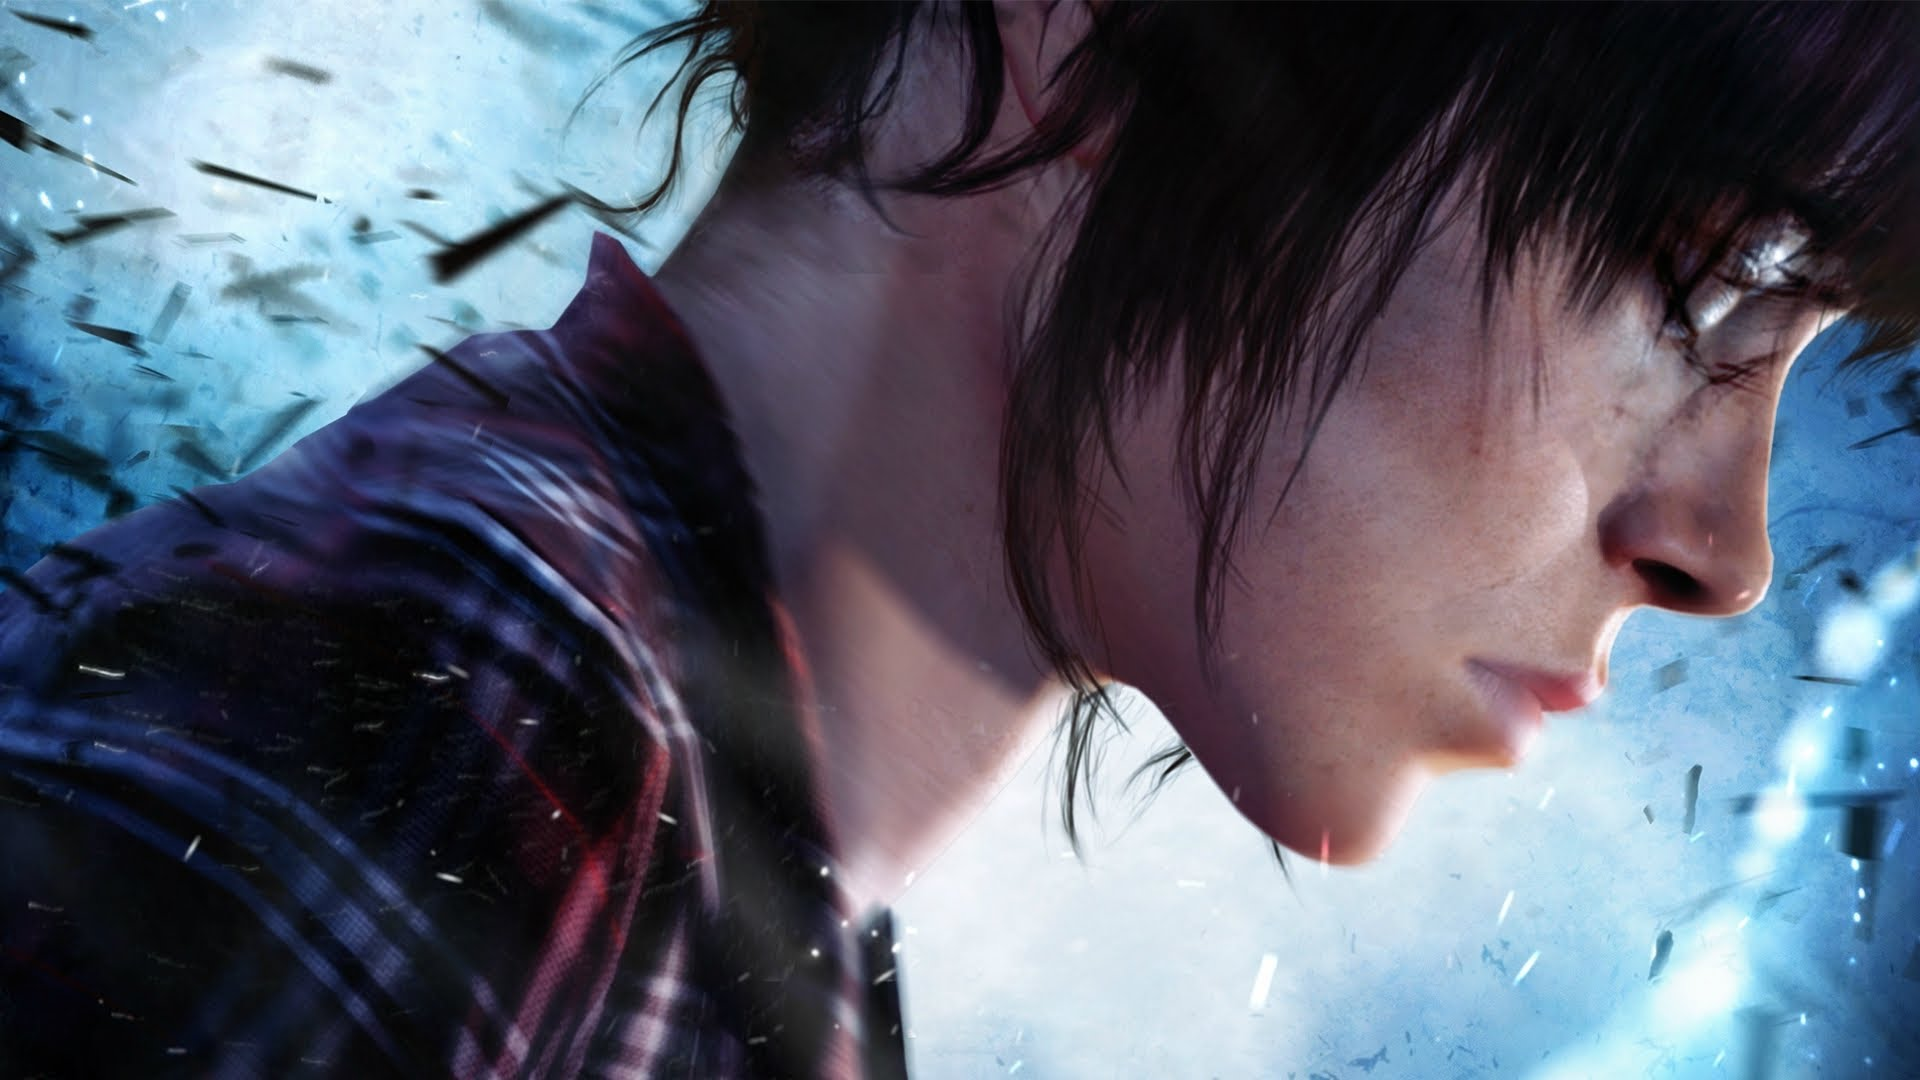 Beyond Two Souls Similarities to Stranger Things